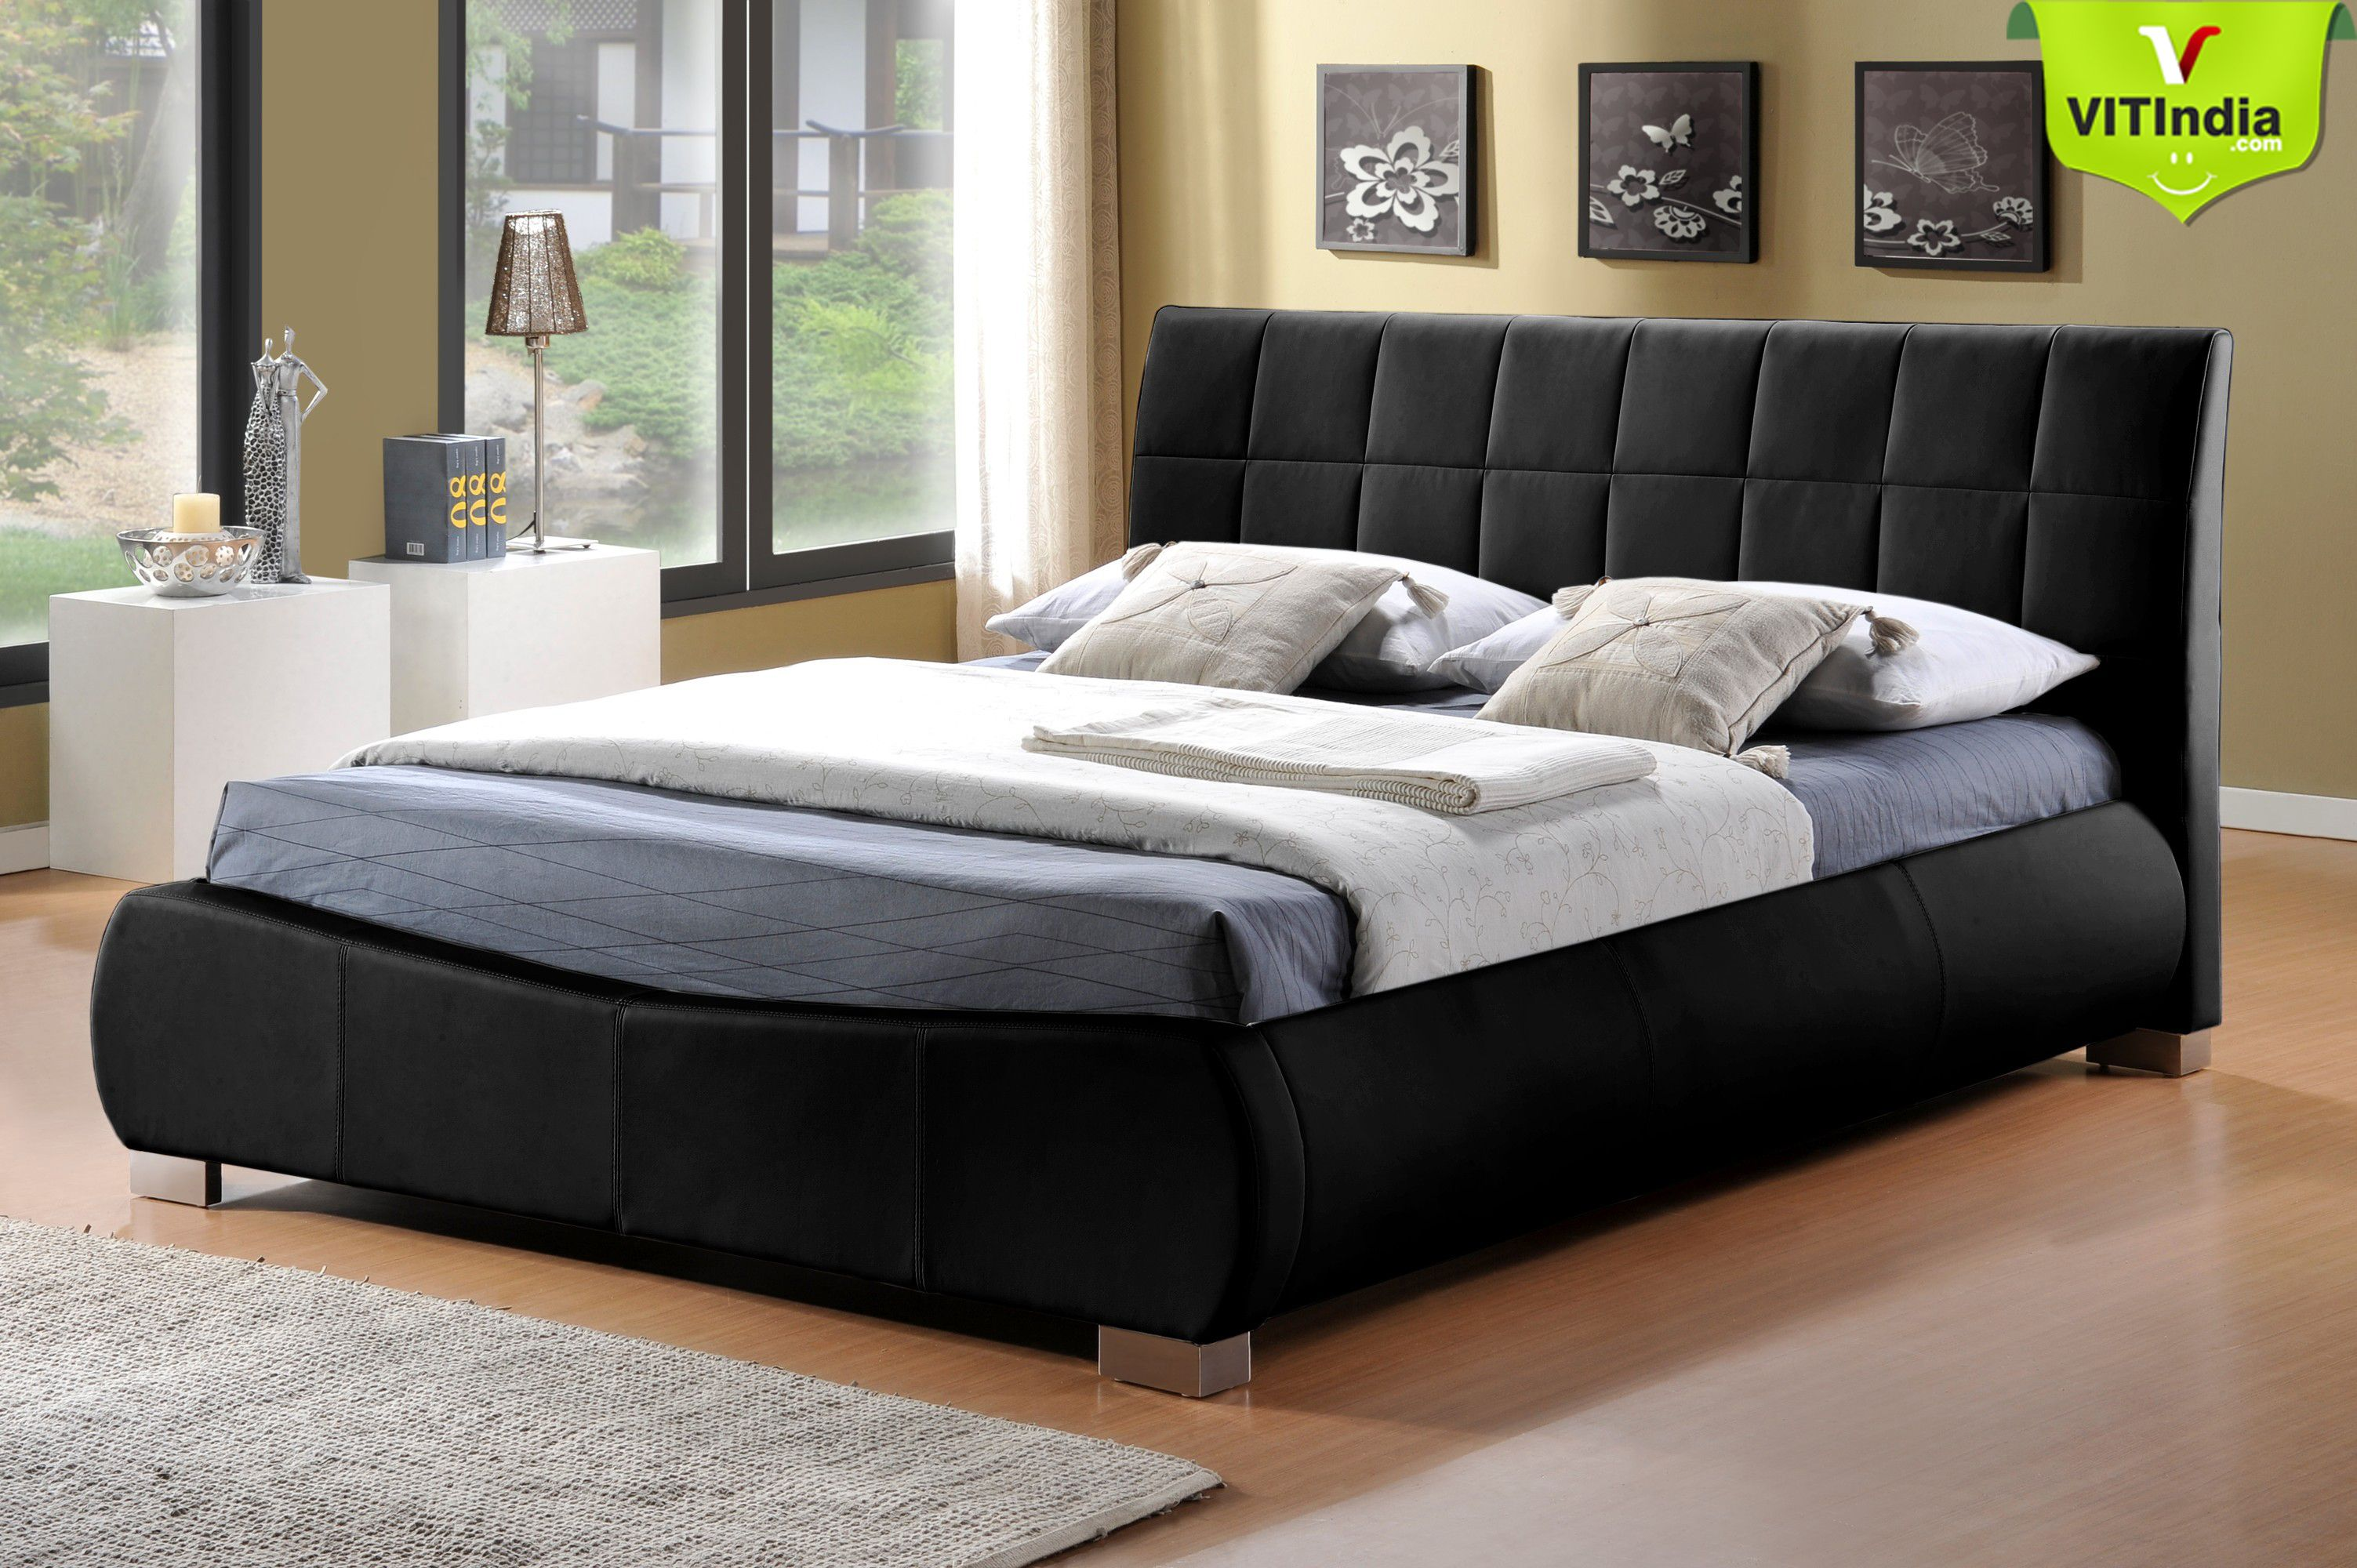 made hand cheap bedroom creative also beds discount all australia pinterest nyc storage platform bed japanese thrifty to stunning toronto diego furniture wood bay asian style sale n photo ah san world about images back on